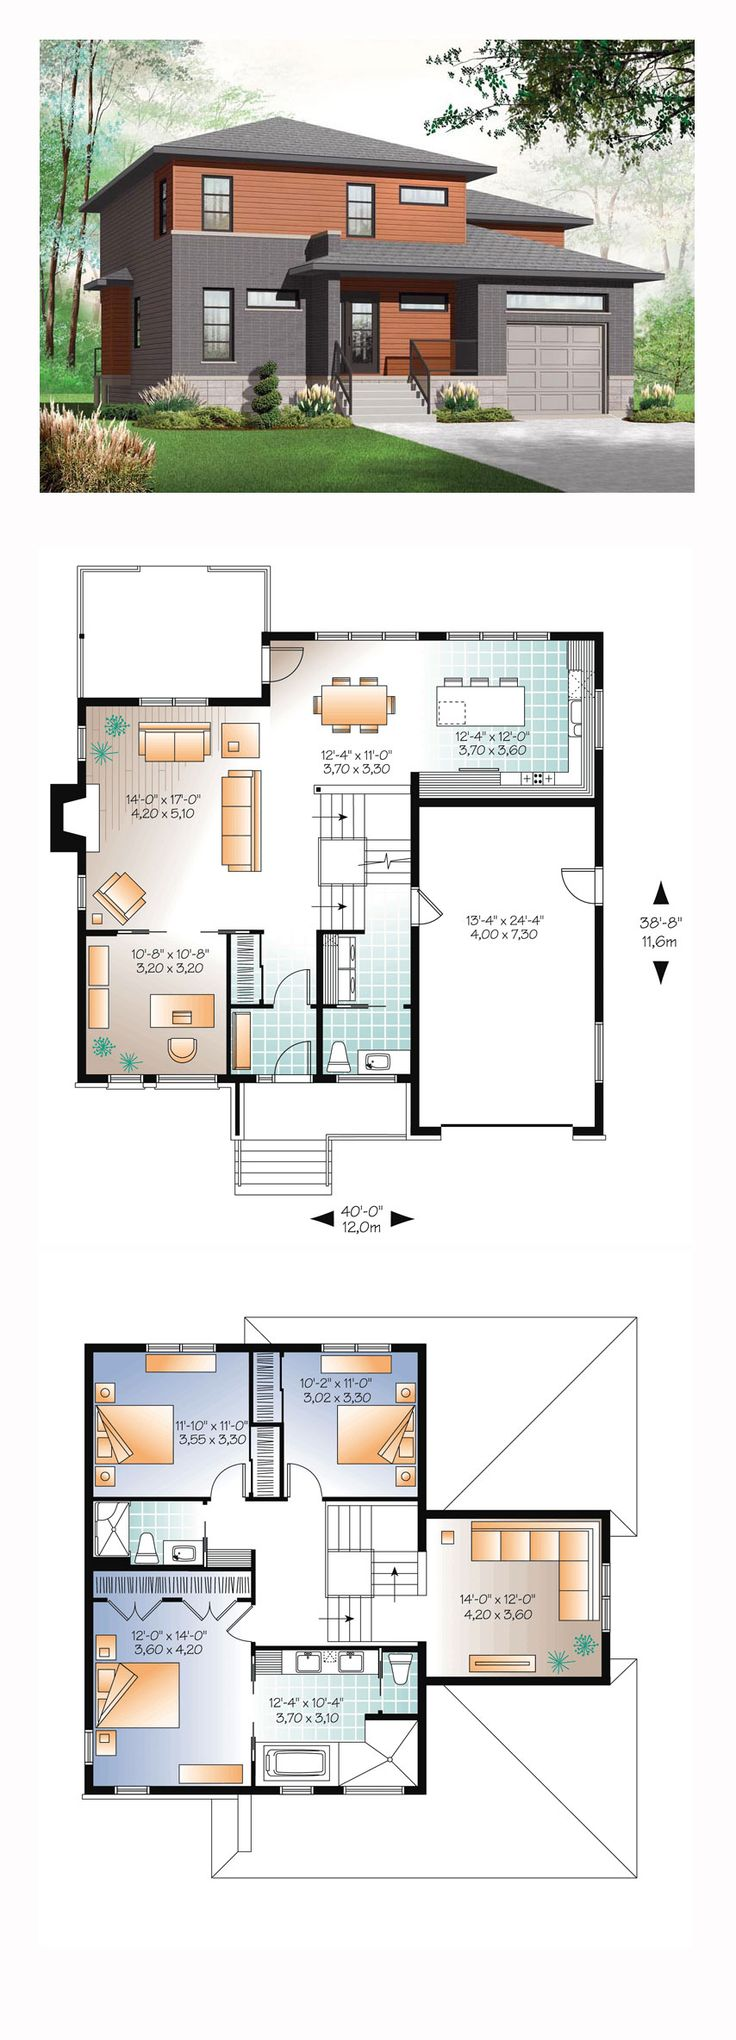 687 best Plans for Apartments & Houses images on Pinterest ...